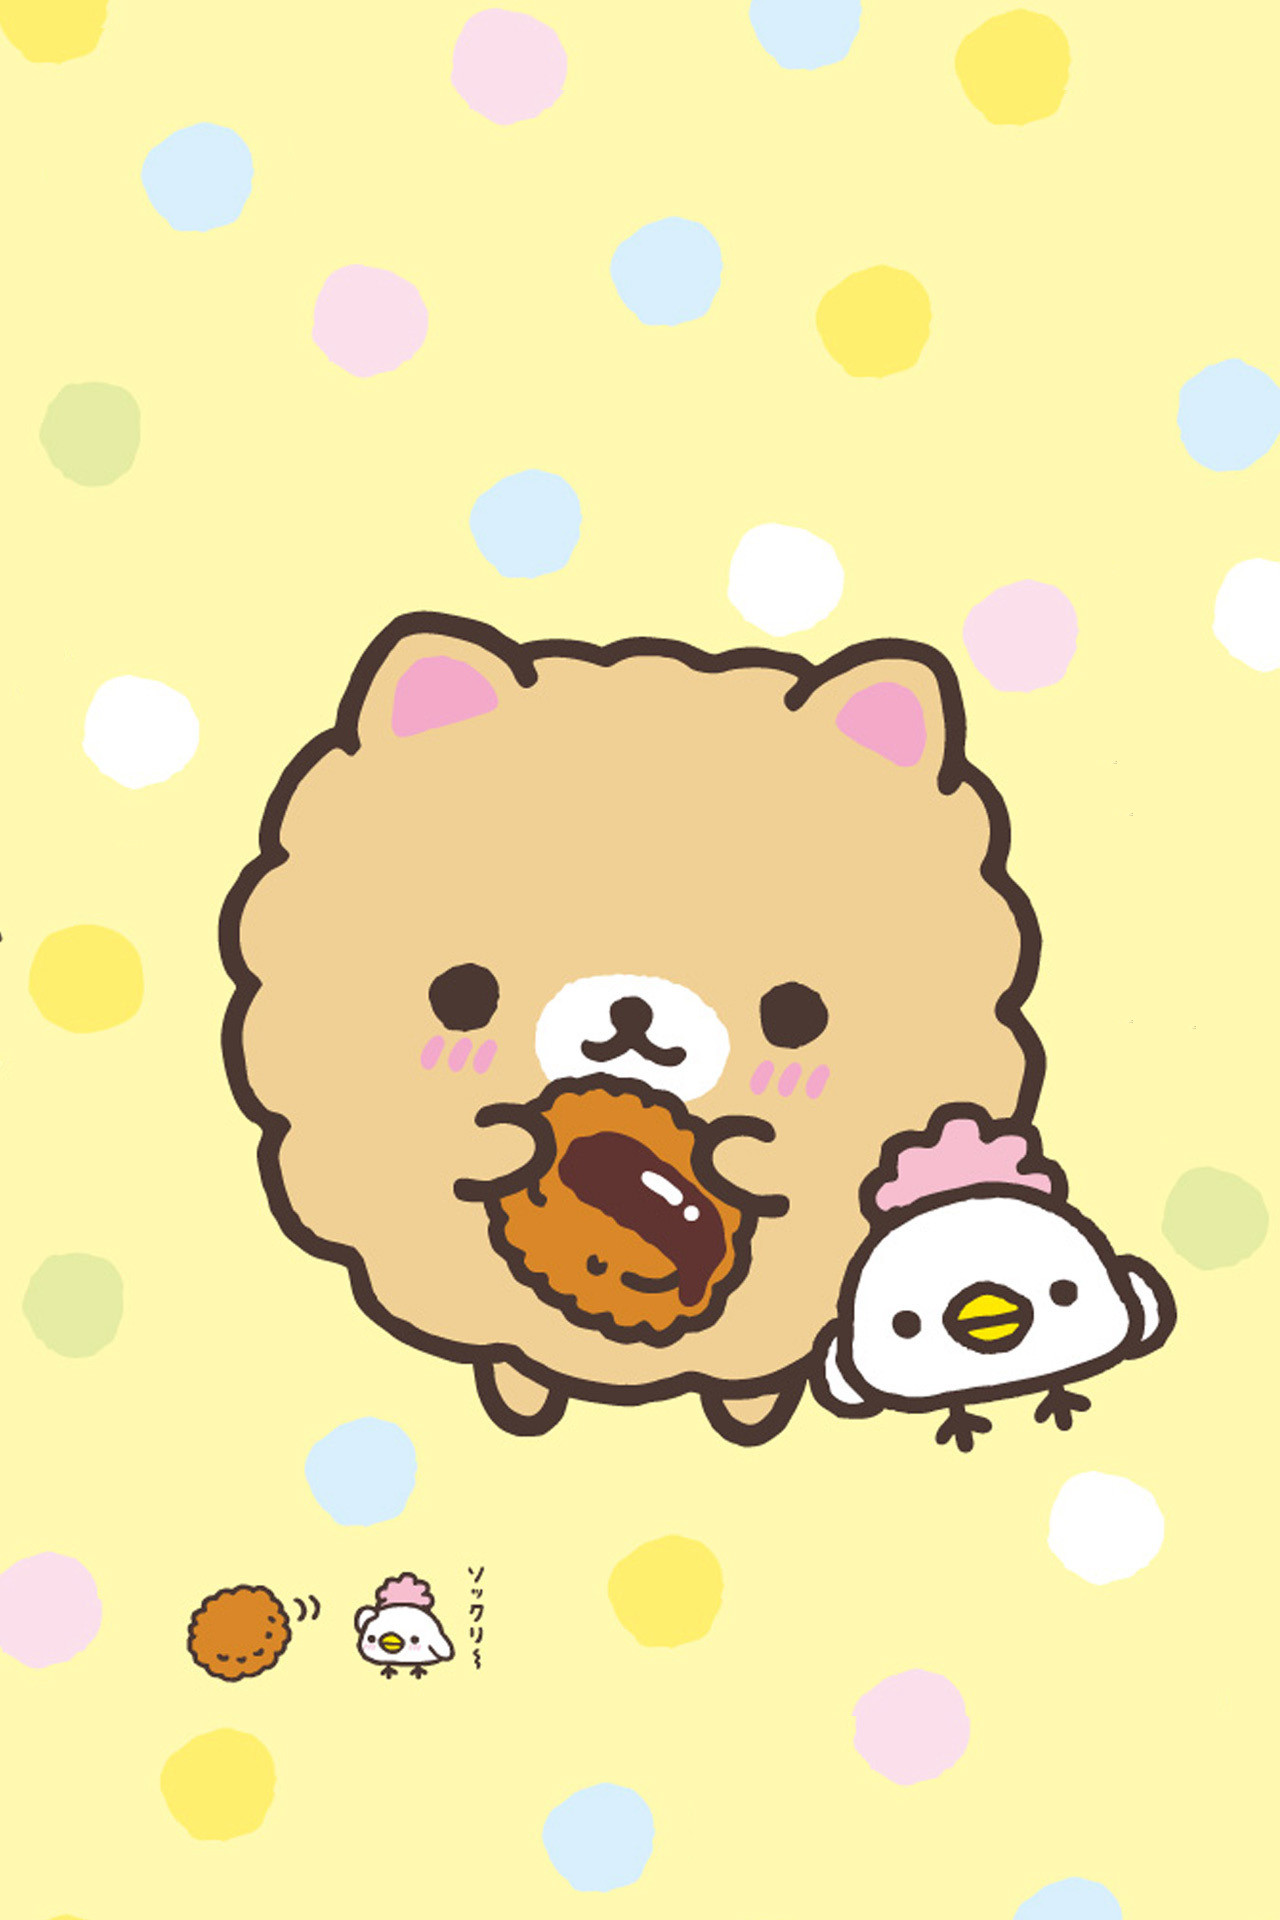 1280x1920 #Rilakkuma / Soo #Kawaii > Download more super cute #iPhone #Wallpapers at